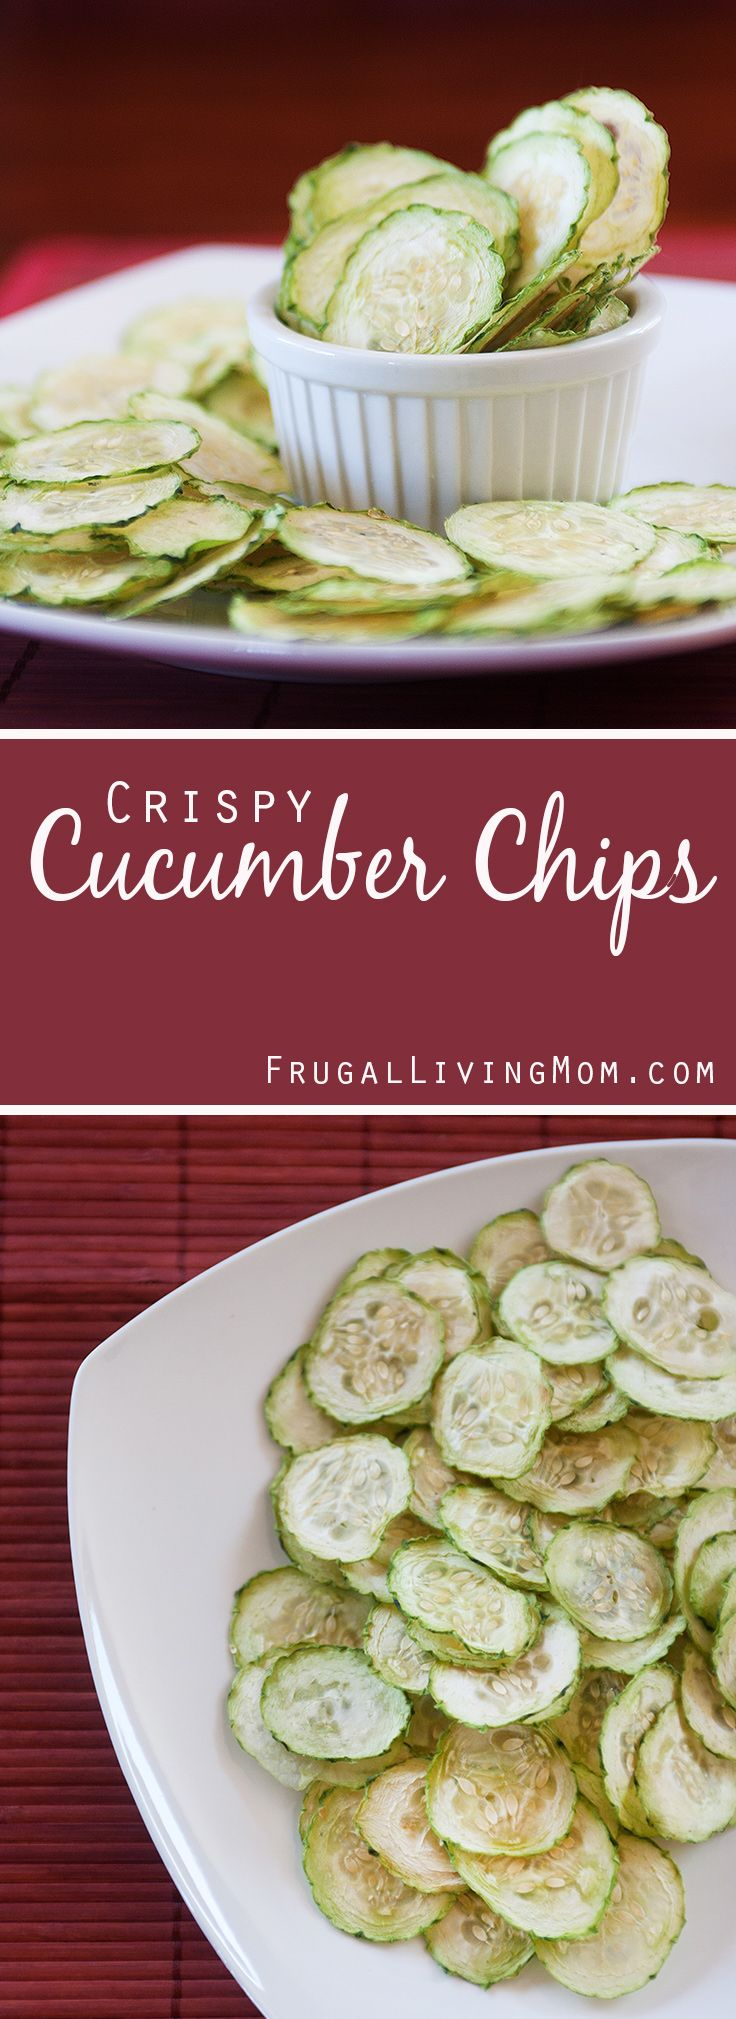 Great reason to pull out the dehydrator! Quick and easy Crispy Cucumber Chips - they only took about 10 minutes to prep, and they probably stay fresh for a few days but we ate them too fast to find out about their shelf life! :)